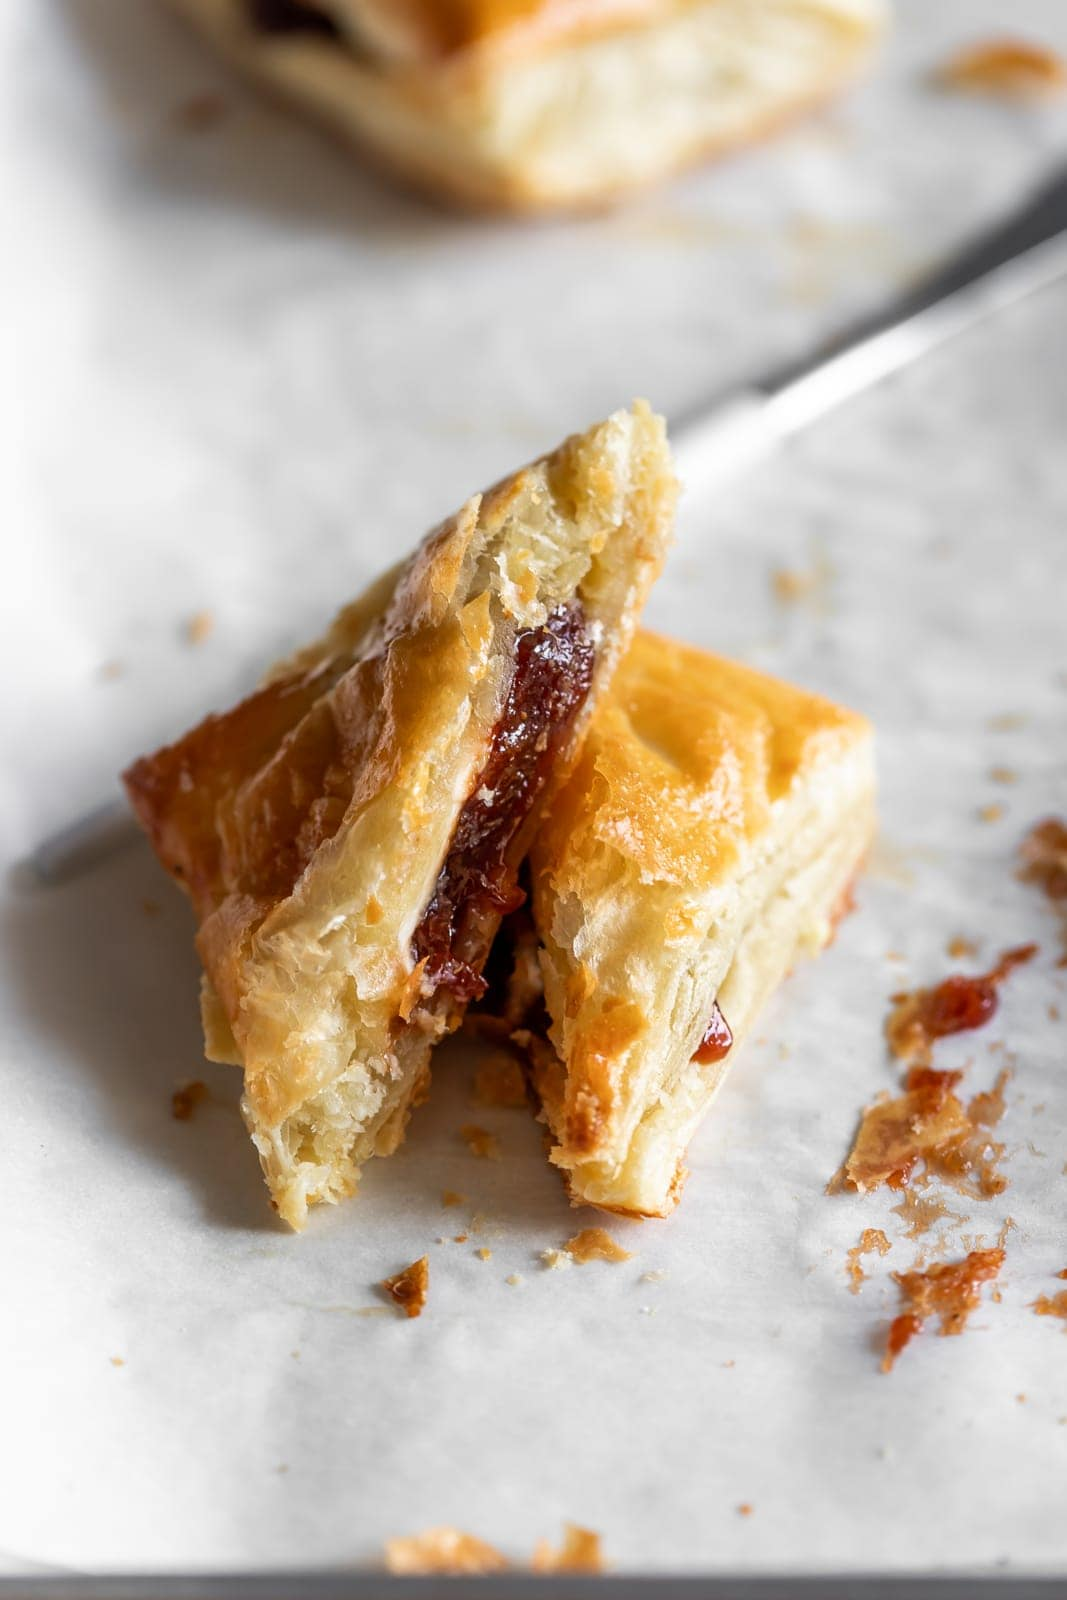 Cuban pastry filled with guava paste and cream cheese